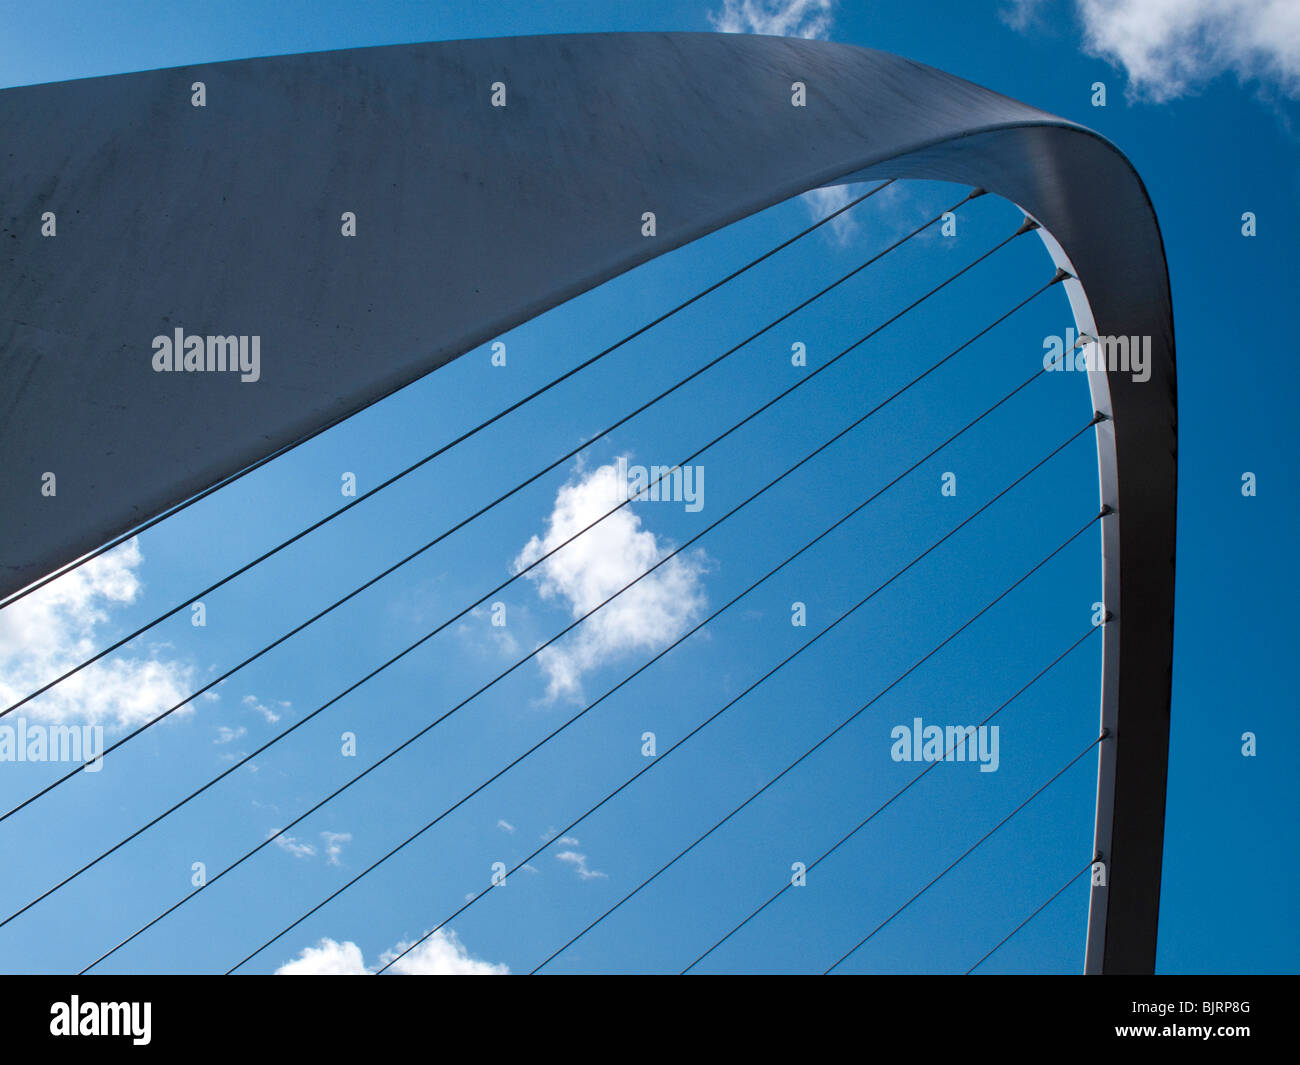 The Gateshead Millenium Bridge, Tyne and Wear, UK - Stock Image